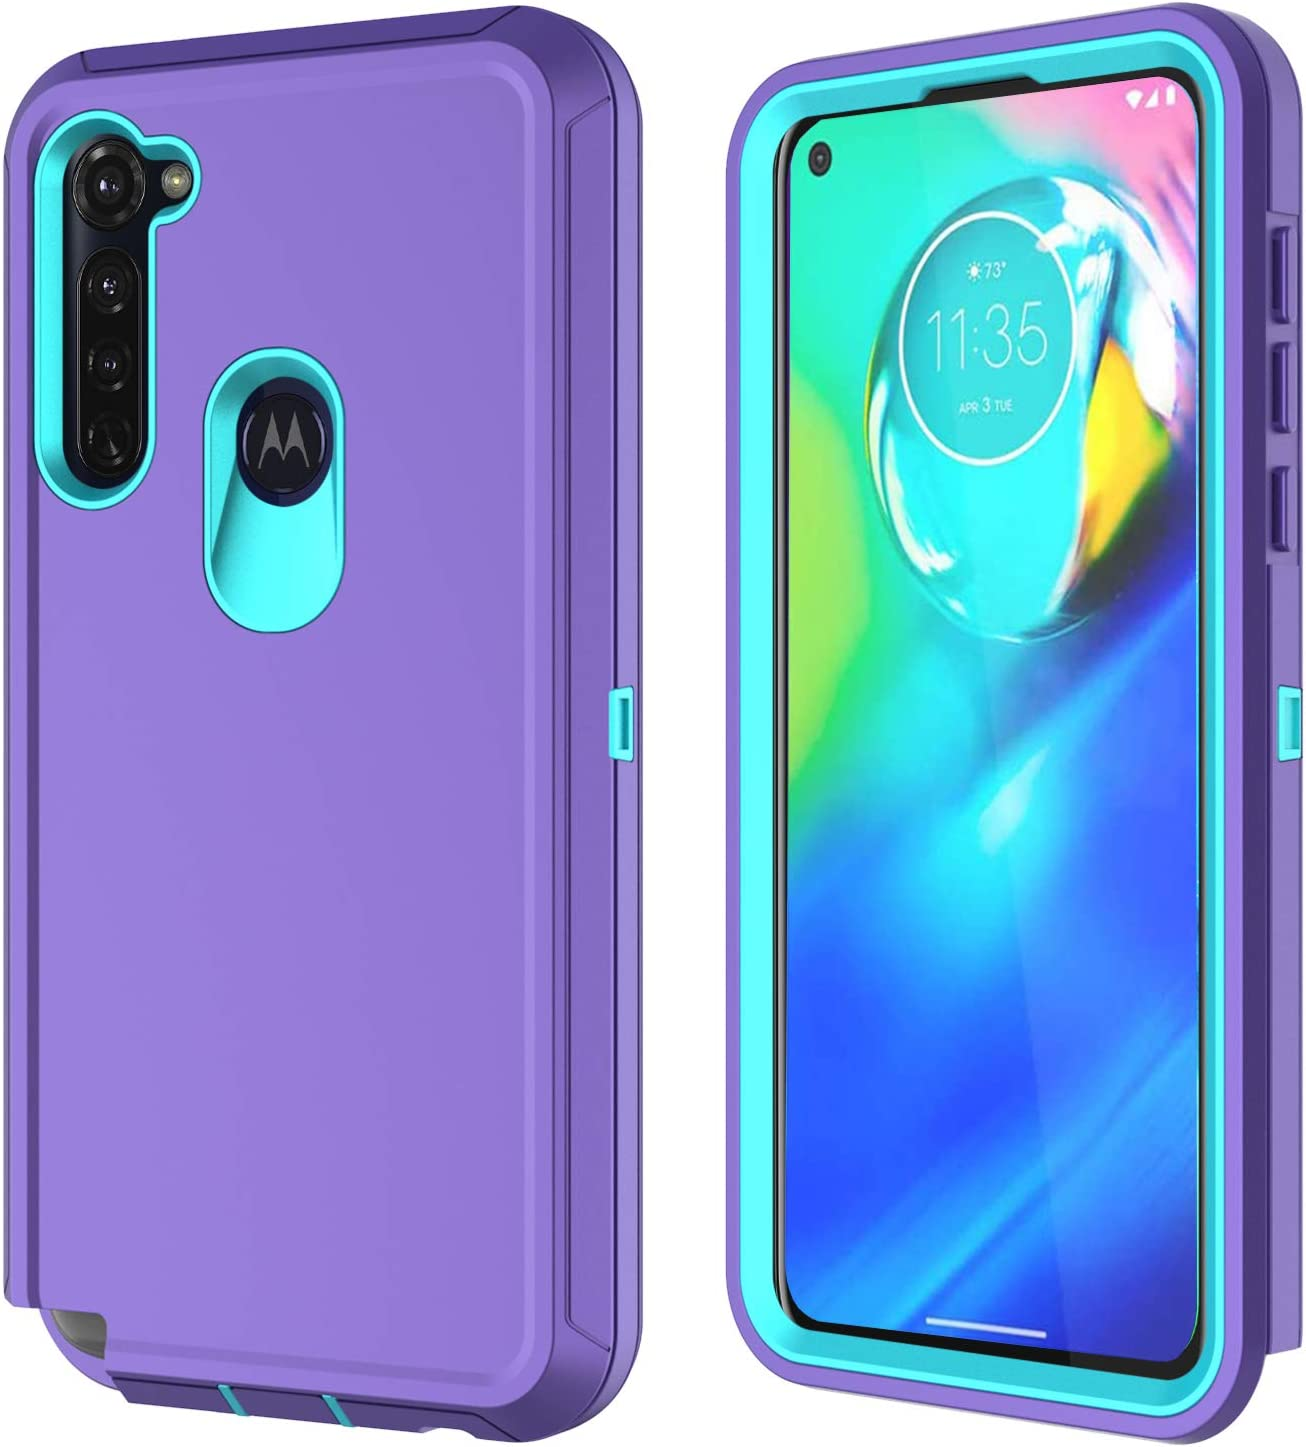 Annymall for Moto G Power, Moto G Stylus Case [with Built-in Screen Protector] Triple Layer Tough Shell Shockproof Phone Cover for Moto G Power/Moto G Stylus (Purple/Mint)